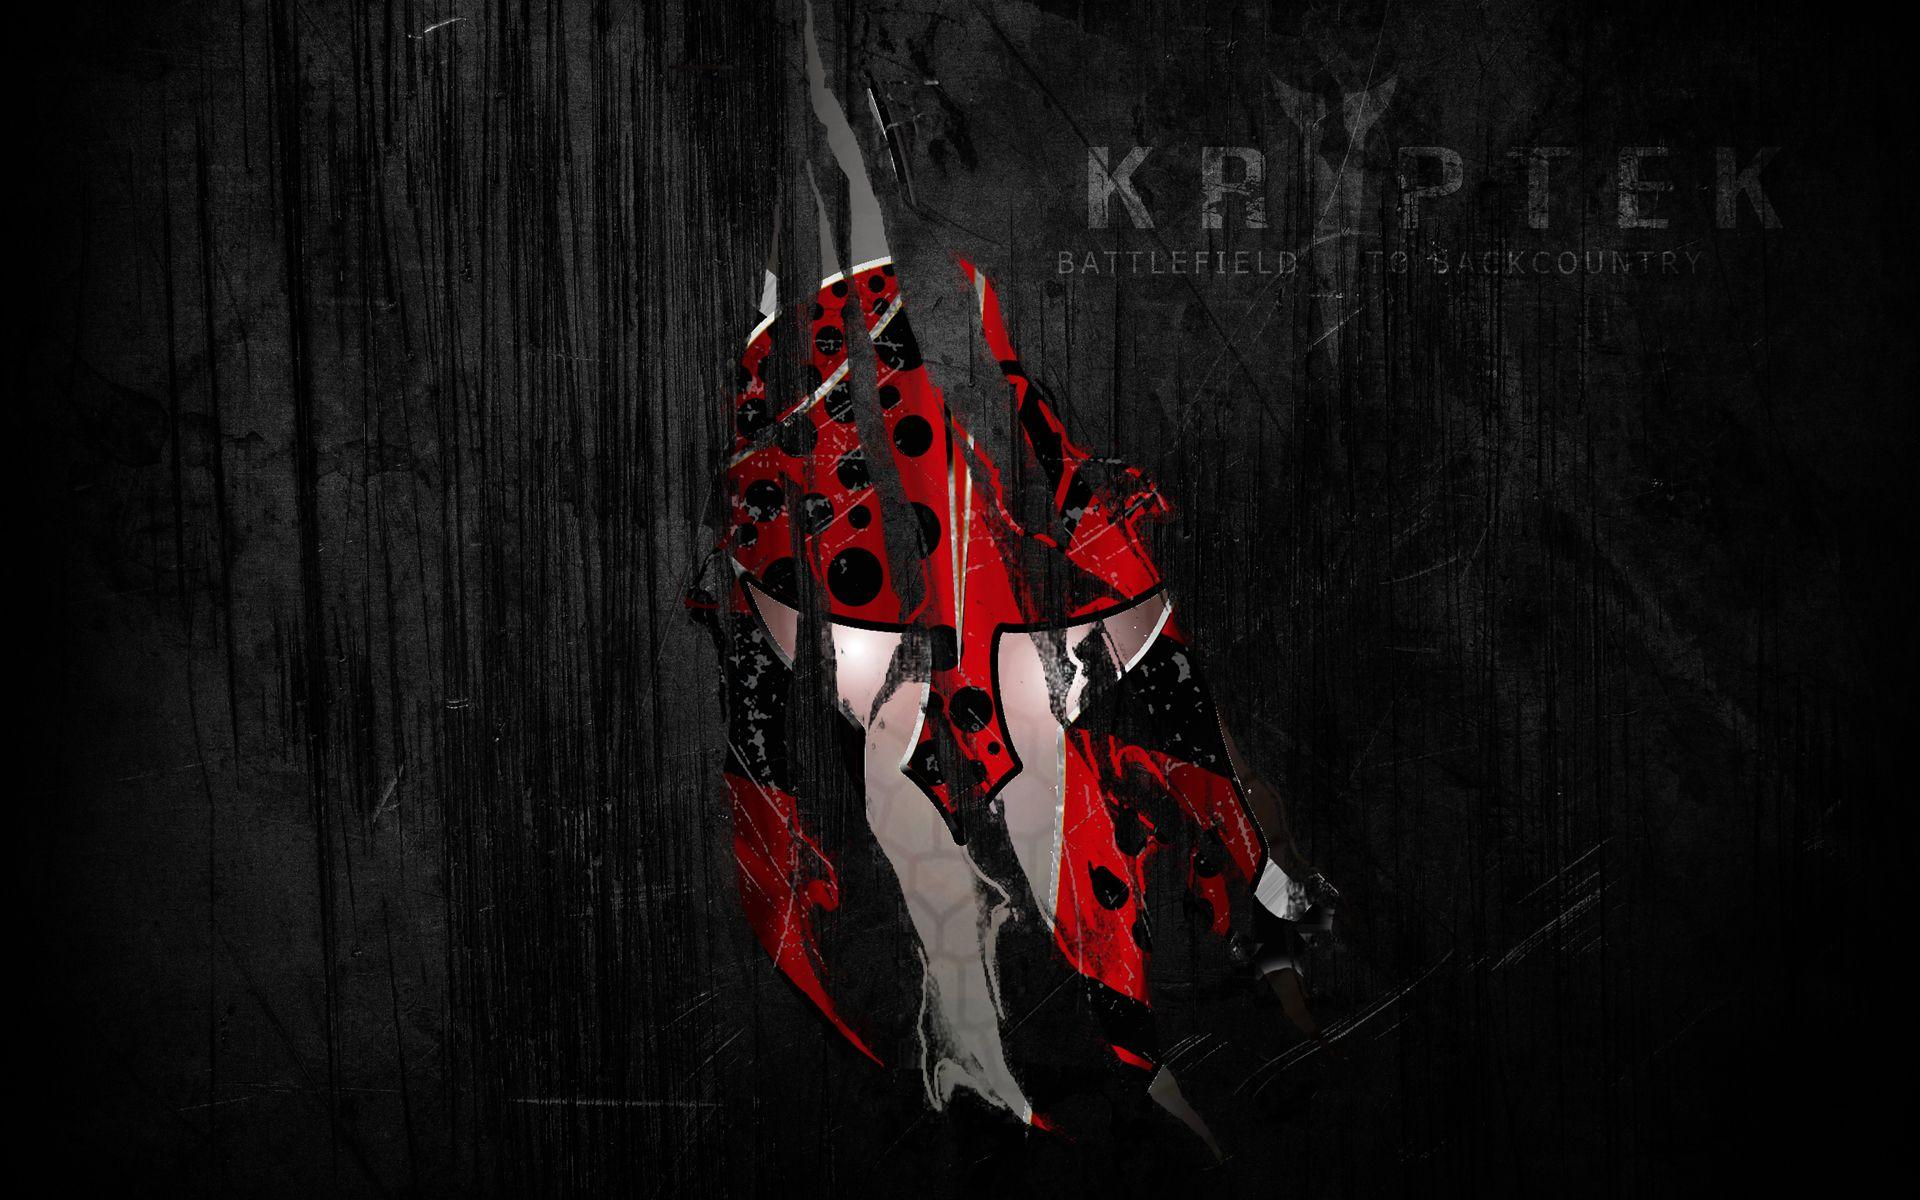 Kryptek Logo Wallpaper: Tobi Wallpapers